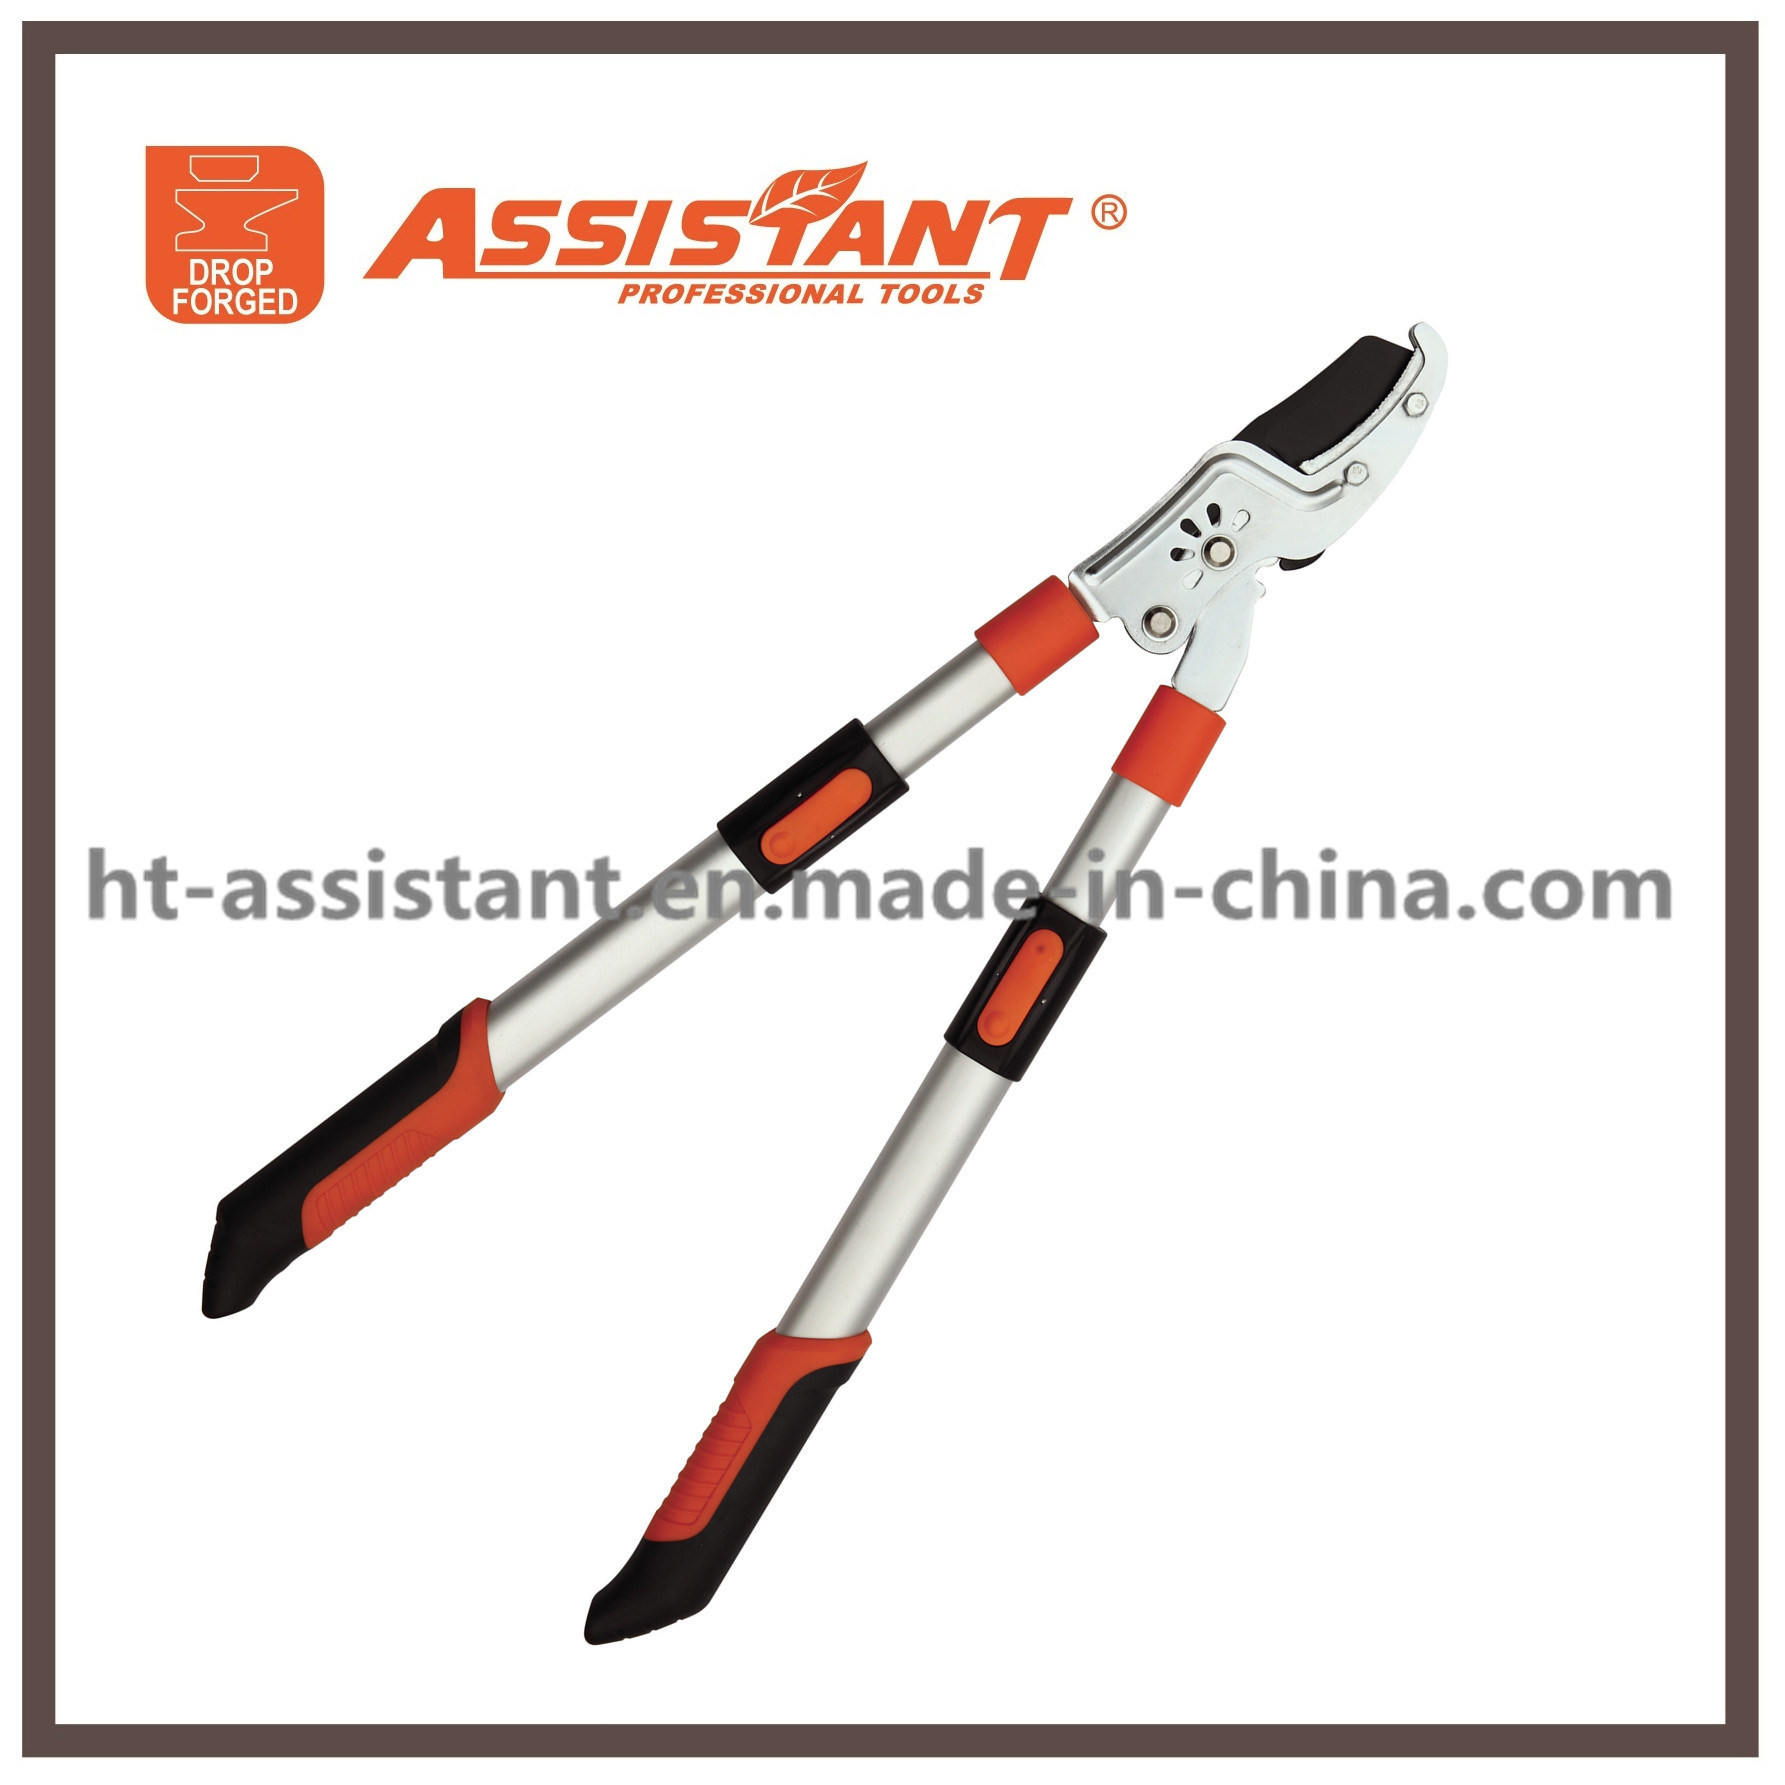 Drop Forged Pruning Shears Telescopic Extendable Aluminum Handles Anvil Loppers